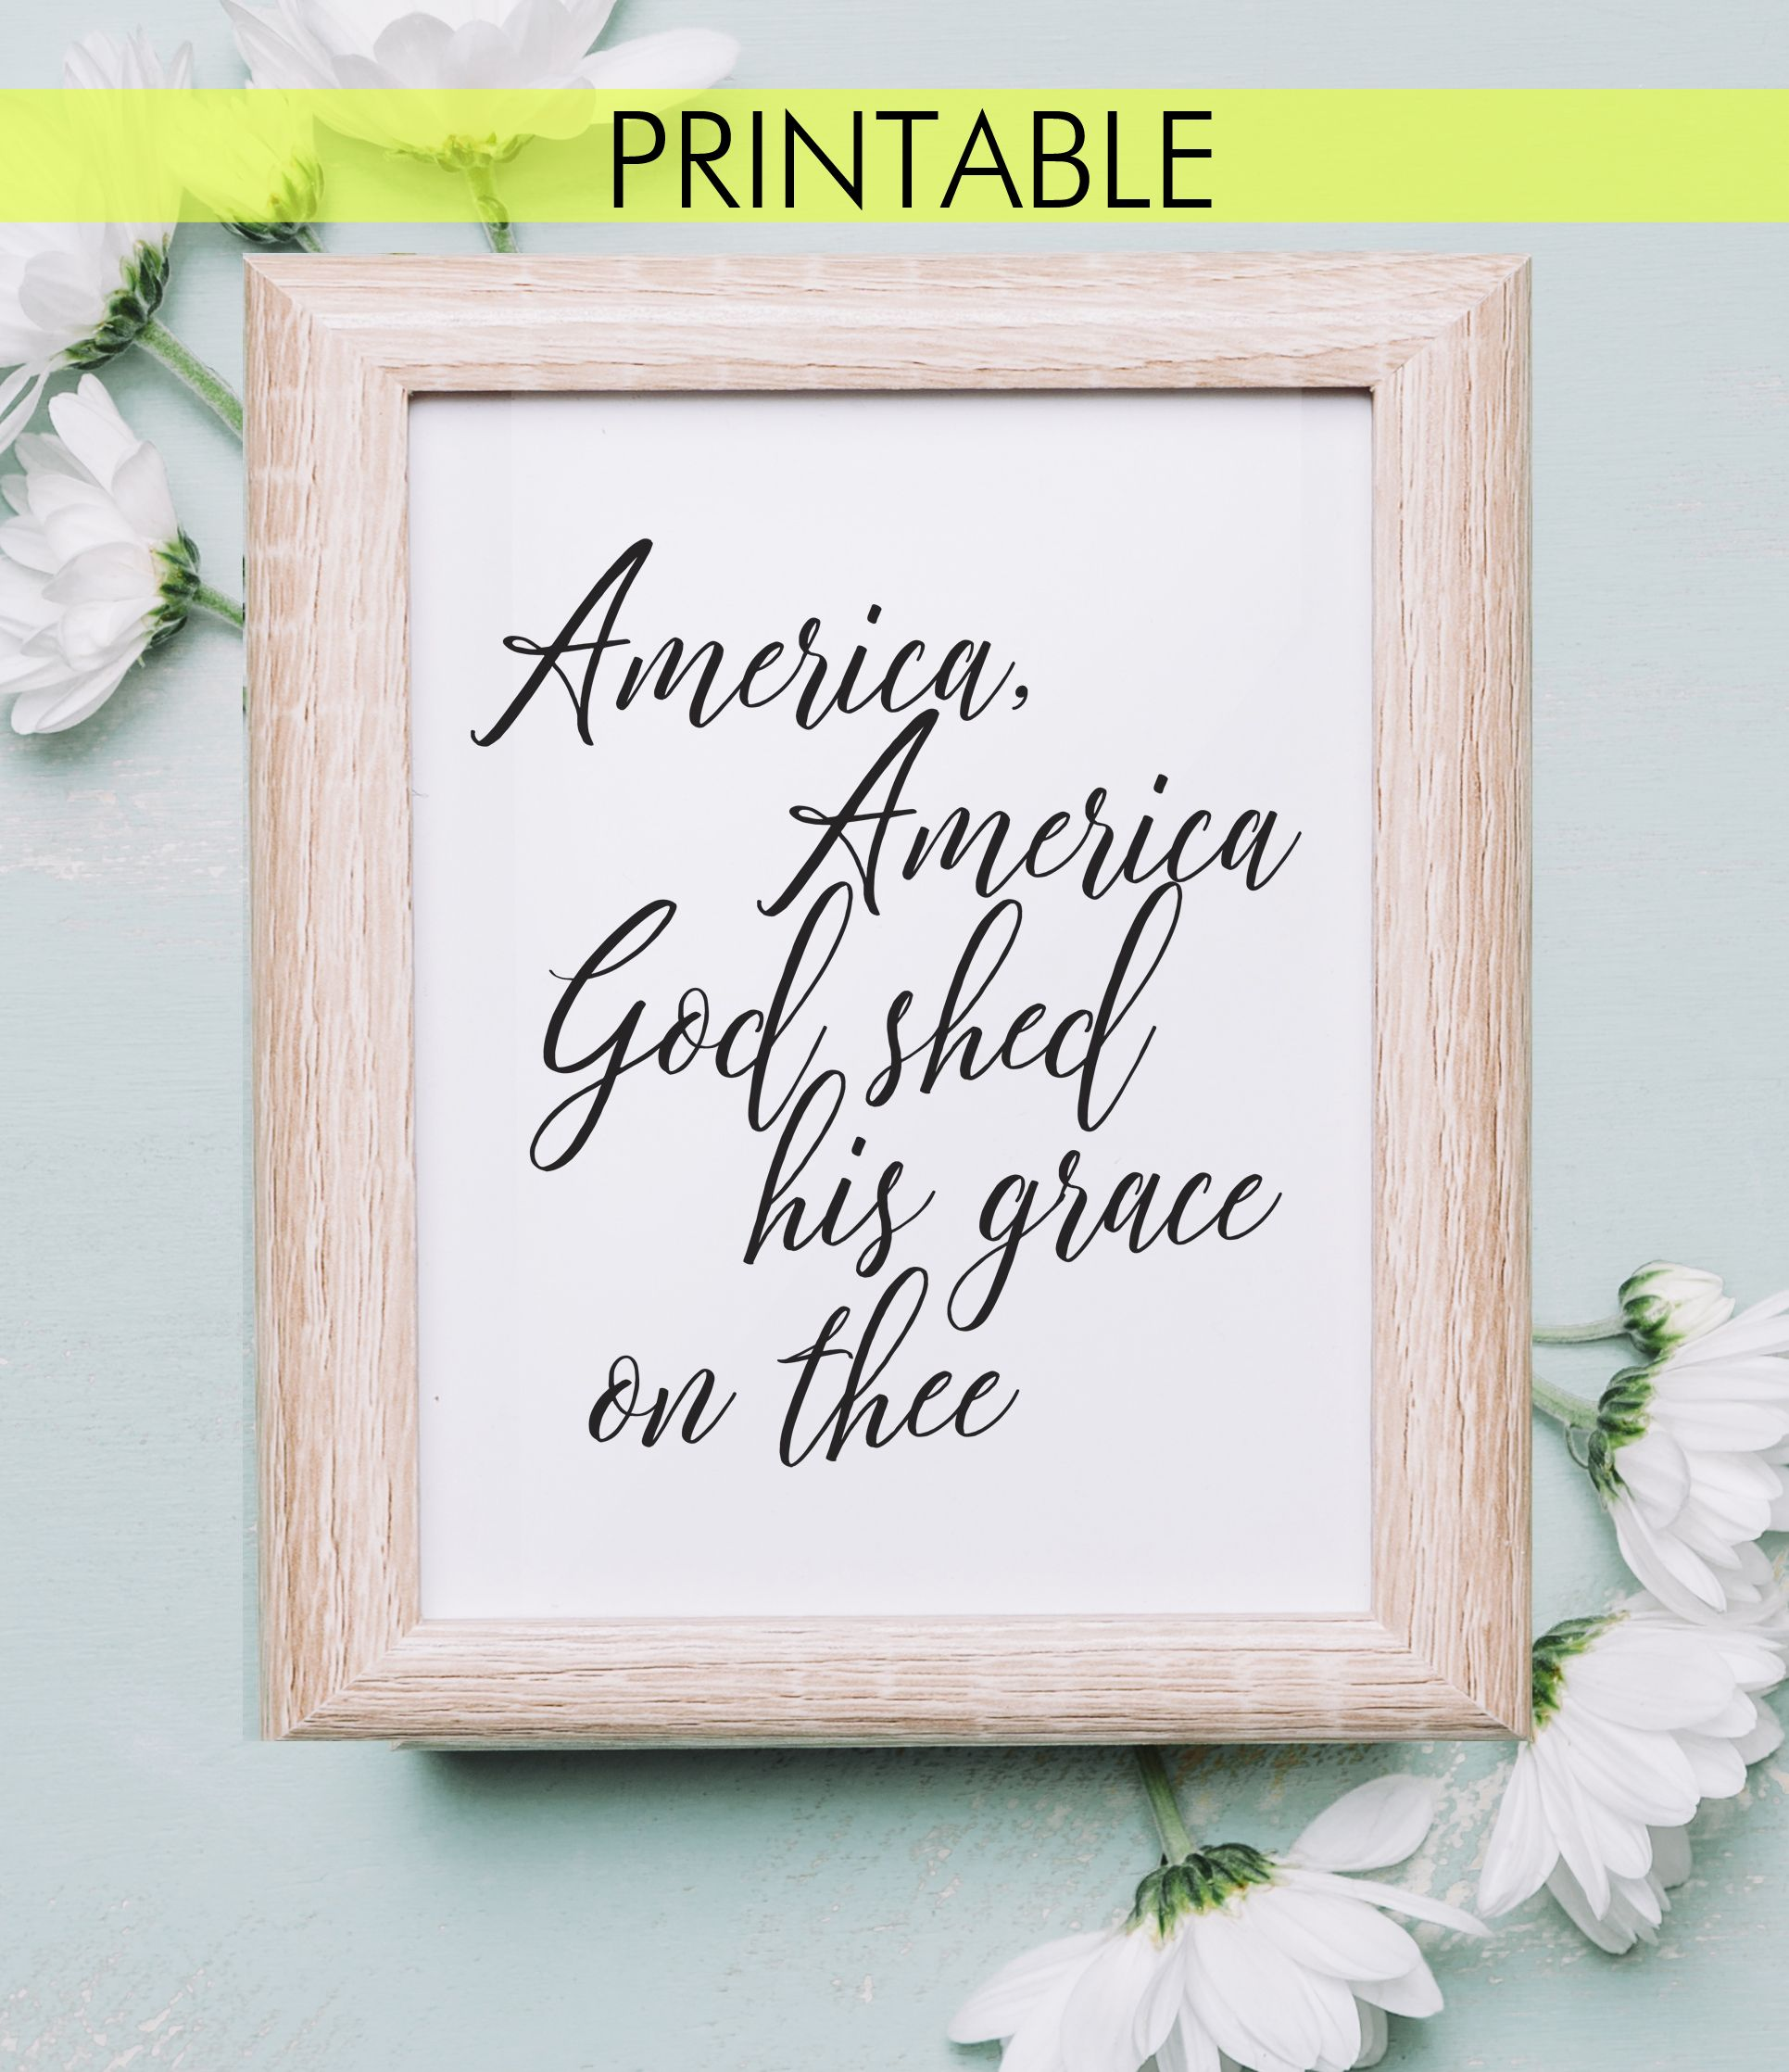 Patriotic July 4th Independence Day America America God Shed His Grace On Thee Americ Independence Day Inspirational Quotes Wall Art Inspirational Wall Art